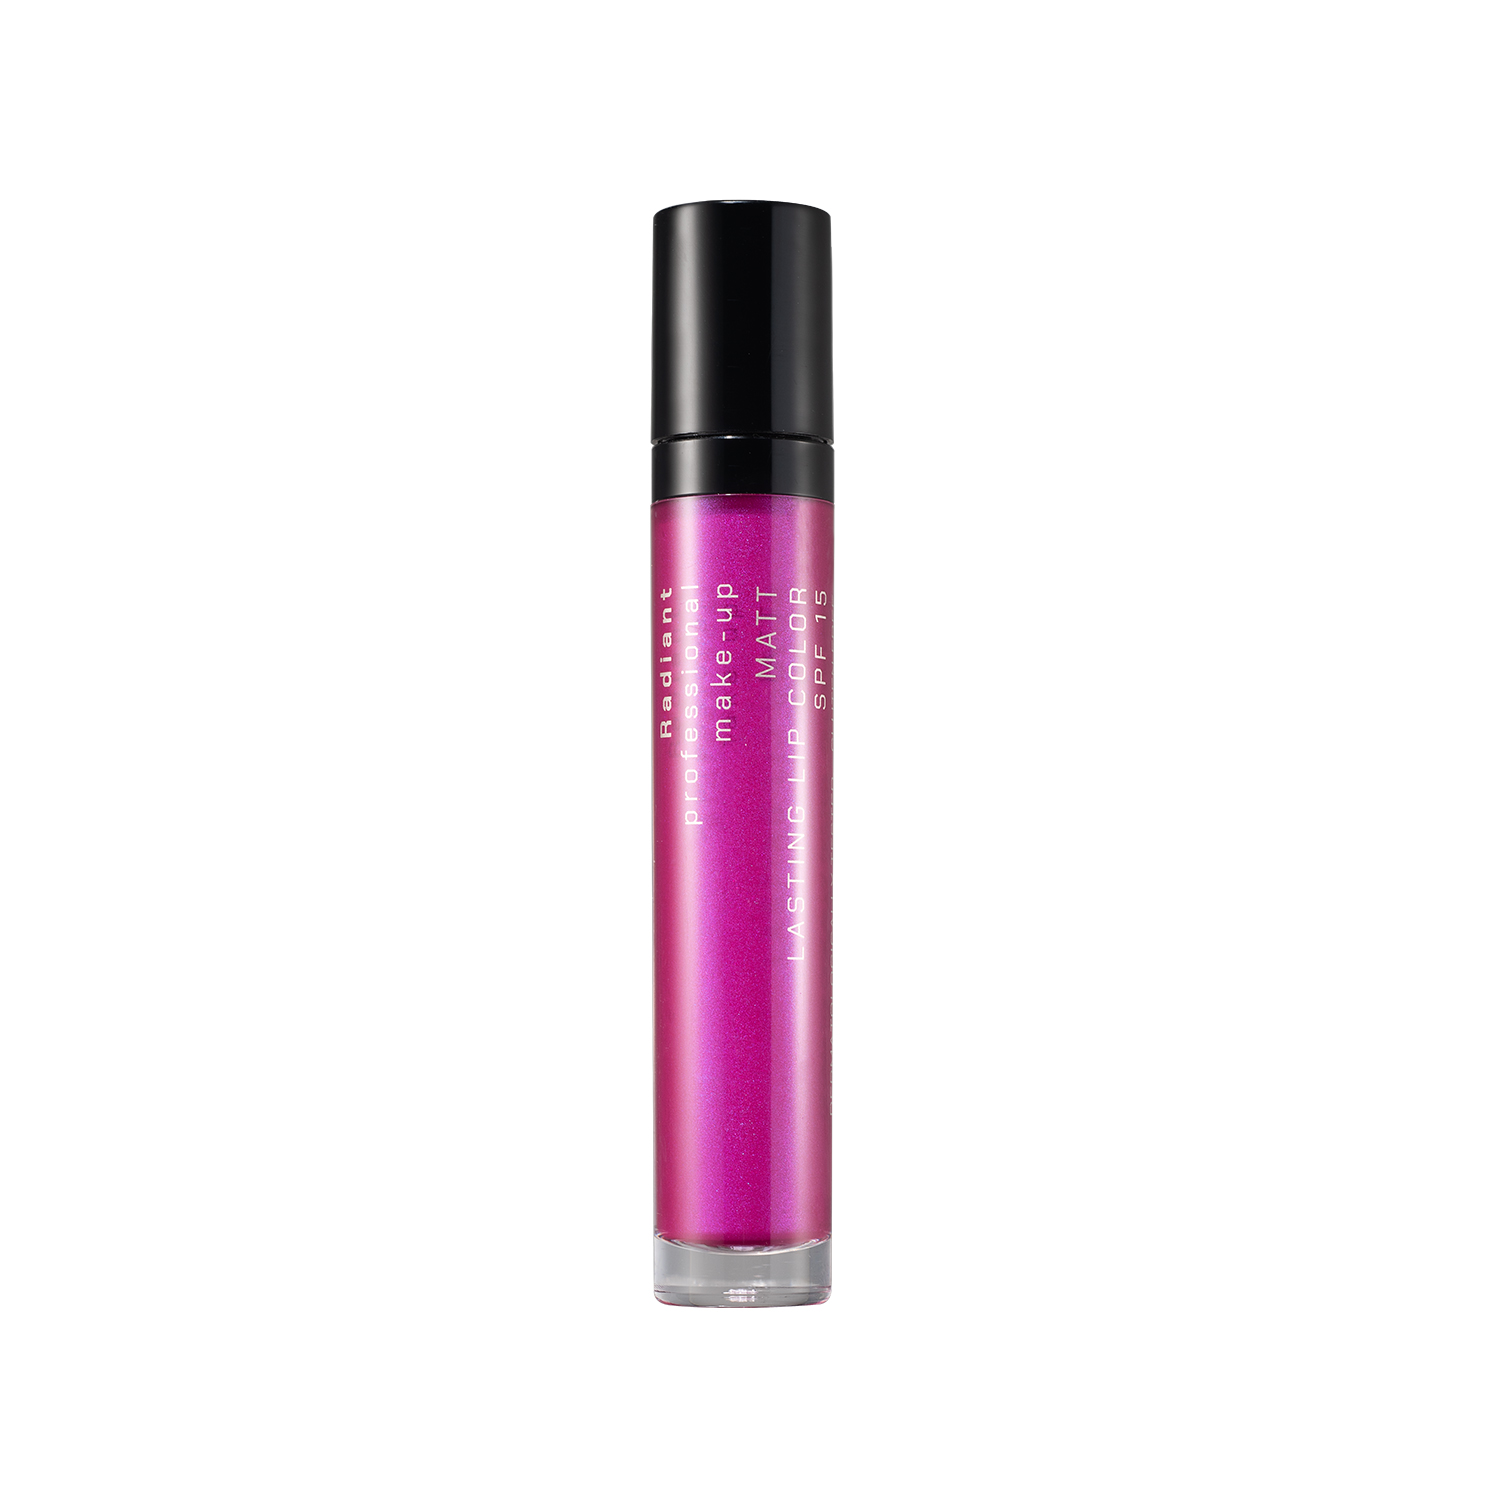 MATT LASTING LIP COLOR (72 METALLIC)